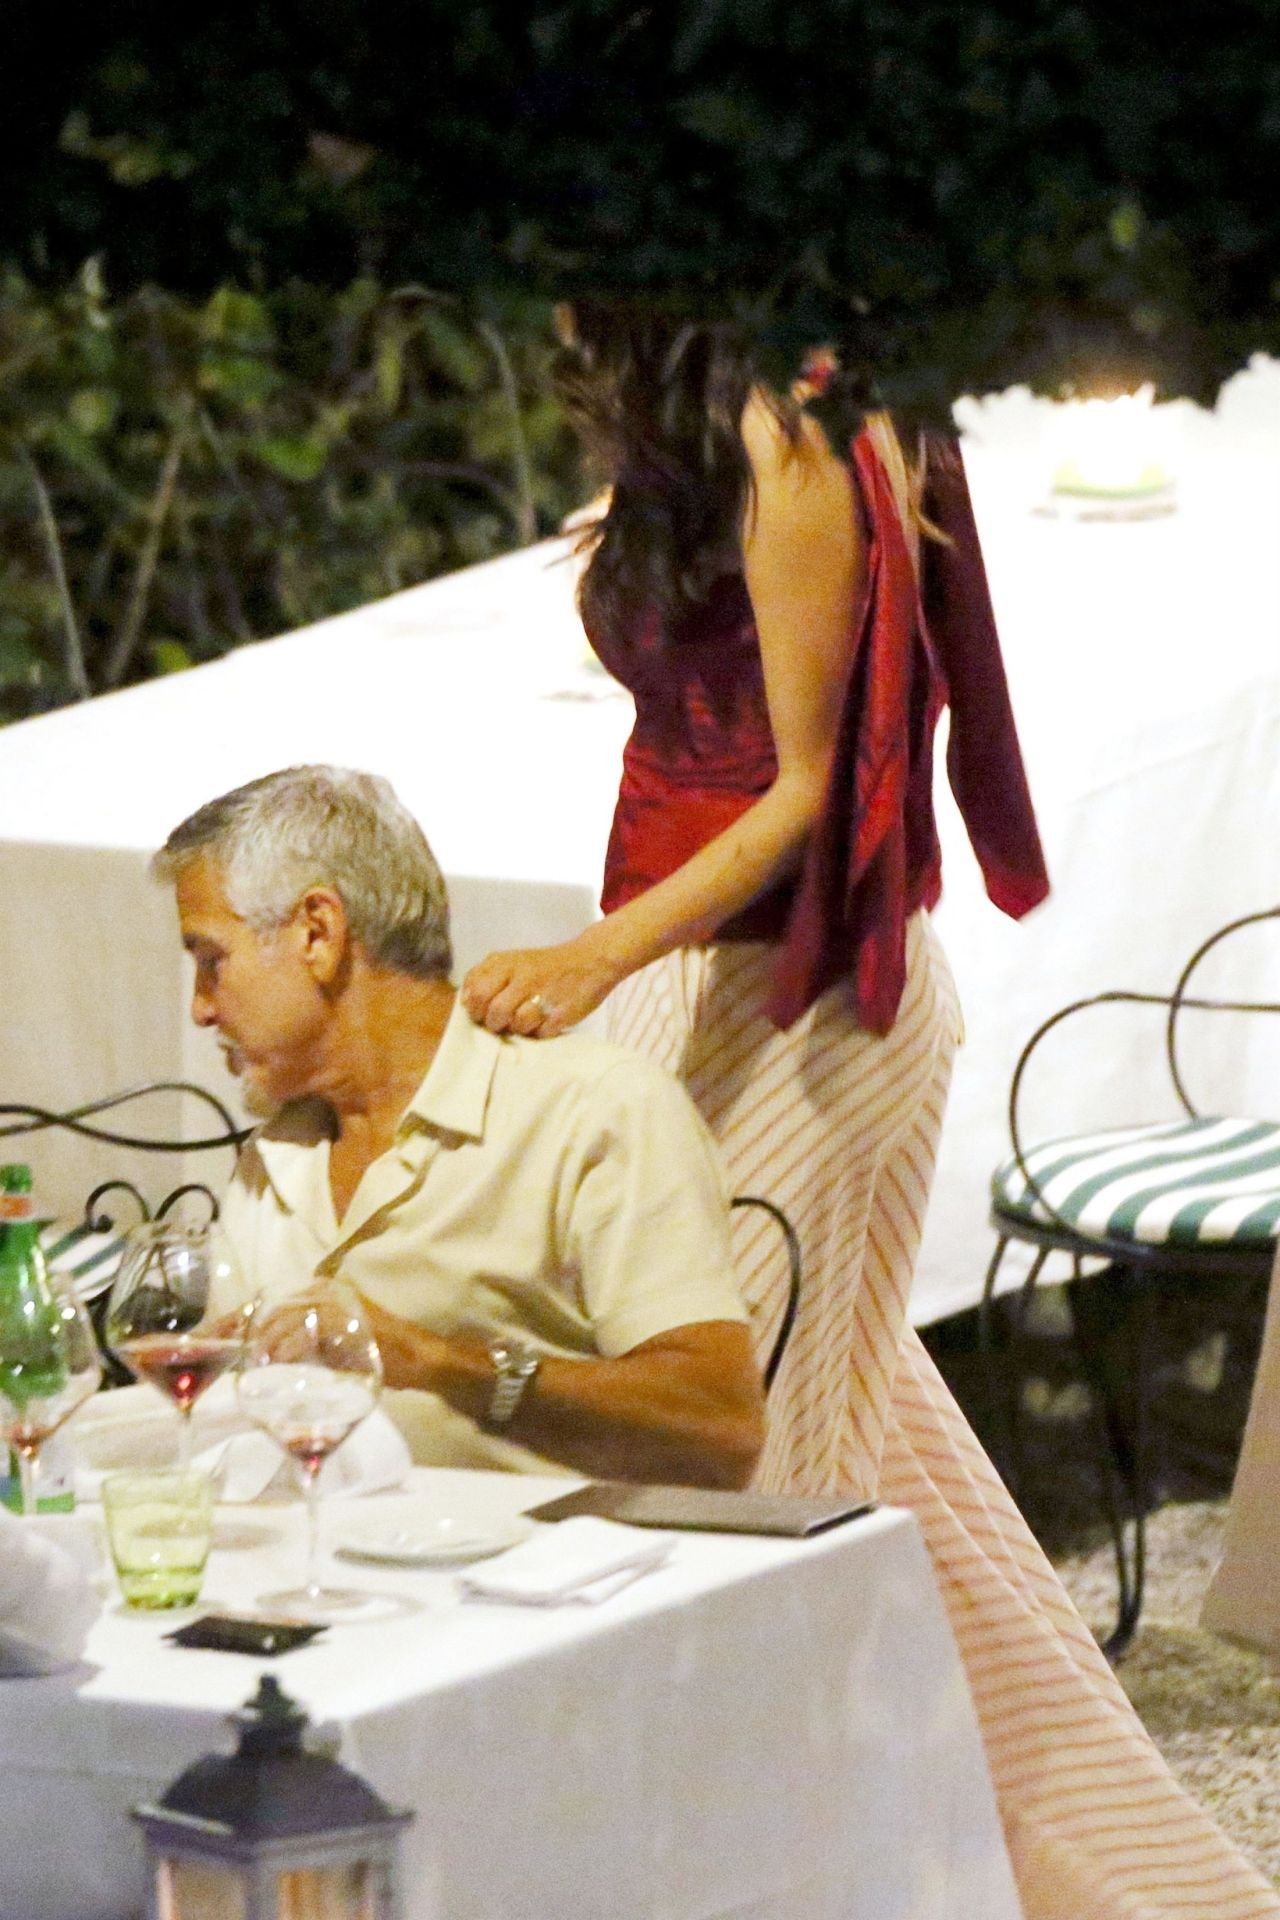 Communication on this topic: Lydia bennet ellie bamber, amal-clooney-and-george-clooney-candlelight-dinner/